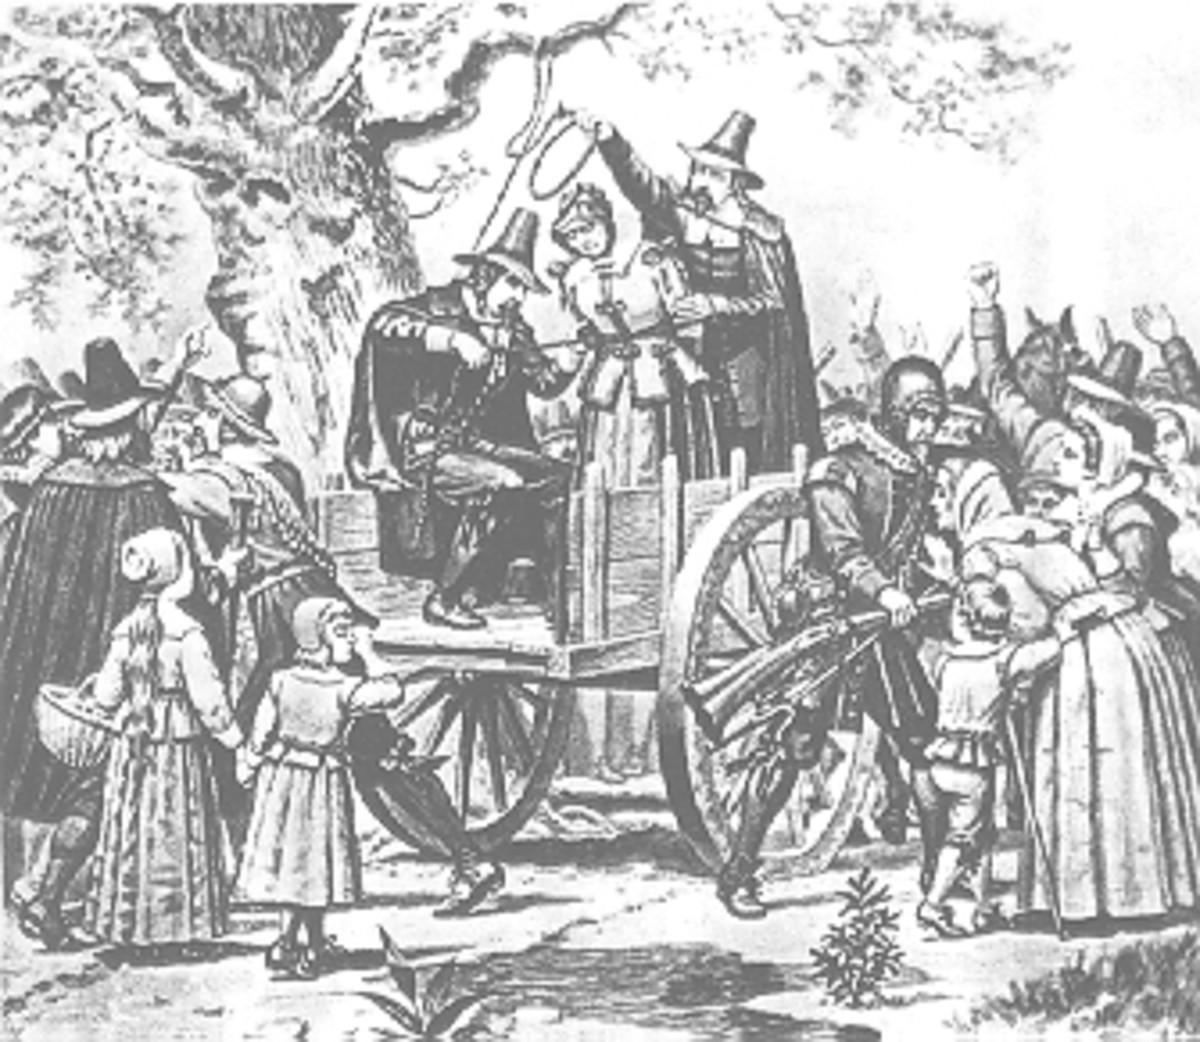 The Hanging of a Witch in 1692